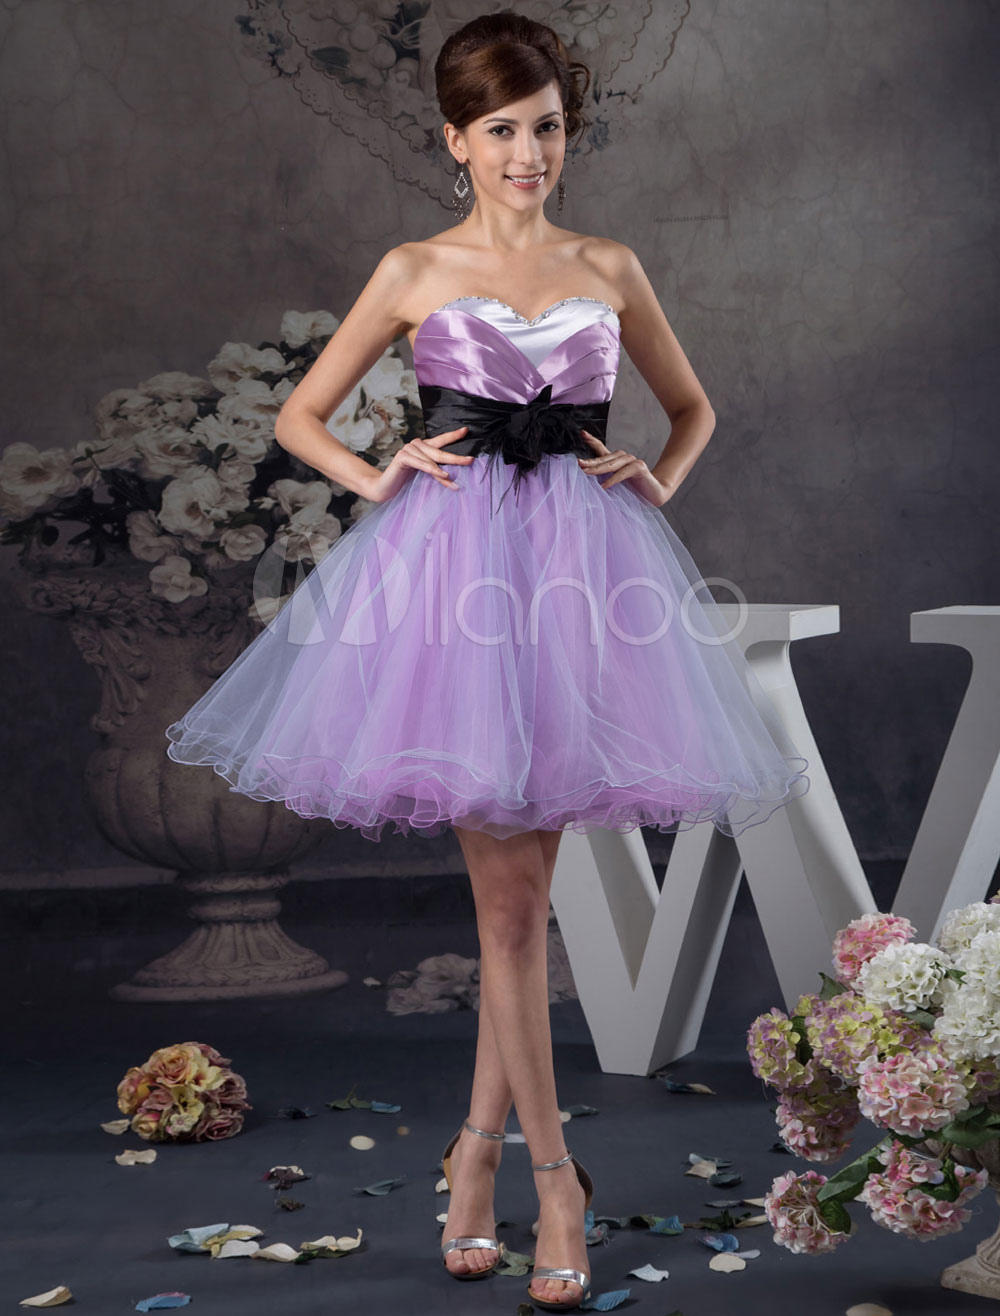 Buy Tulle Homecoming Dress Strapless Sweetheart Satin Pleated Beading A-Line Short Prom Dress Backless Cocktail Dress Milanoo for $109.99 in Milanoo store